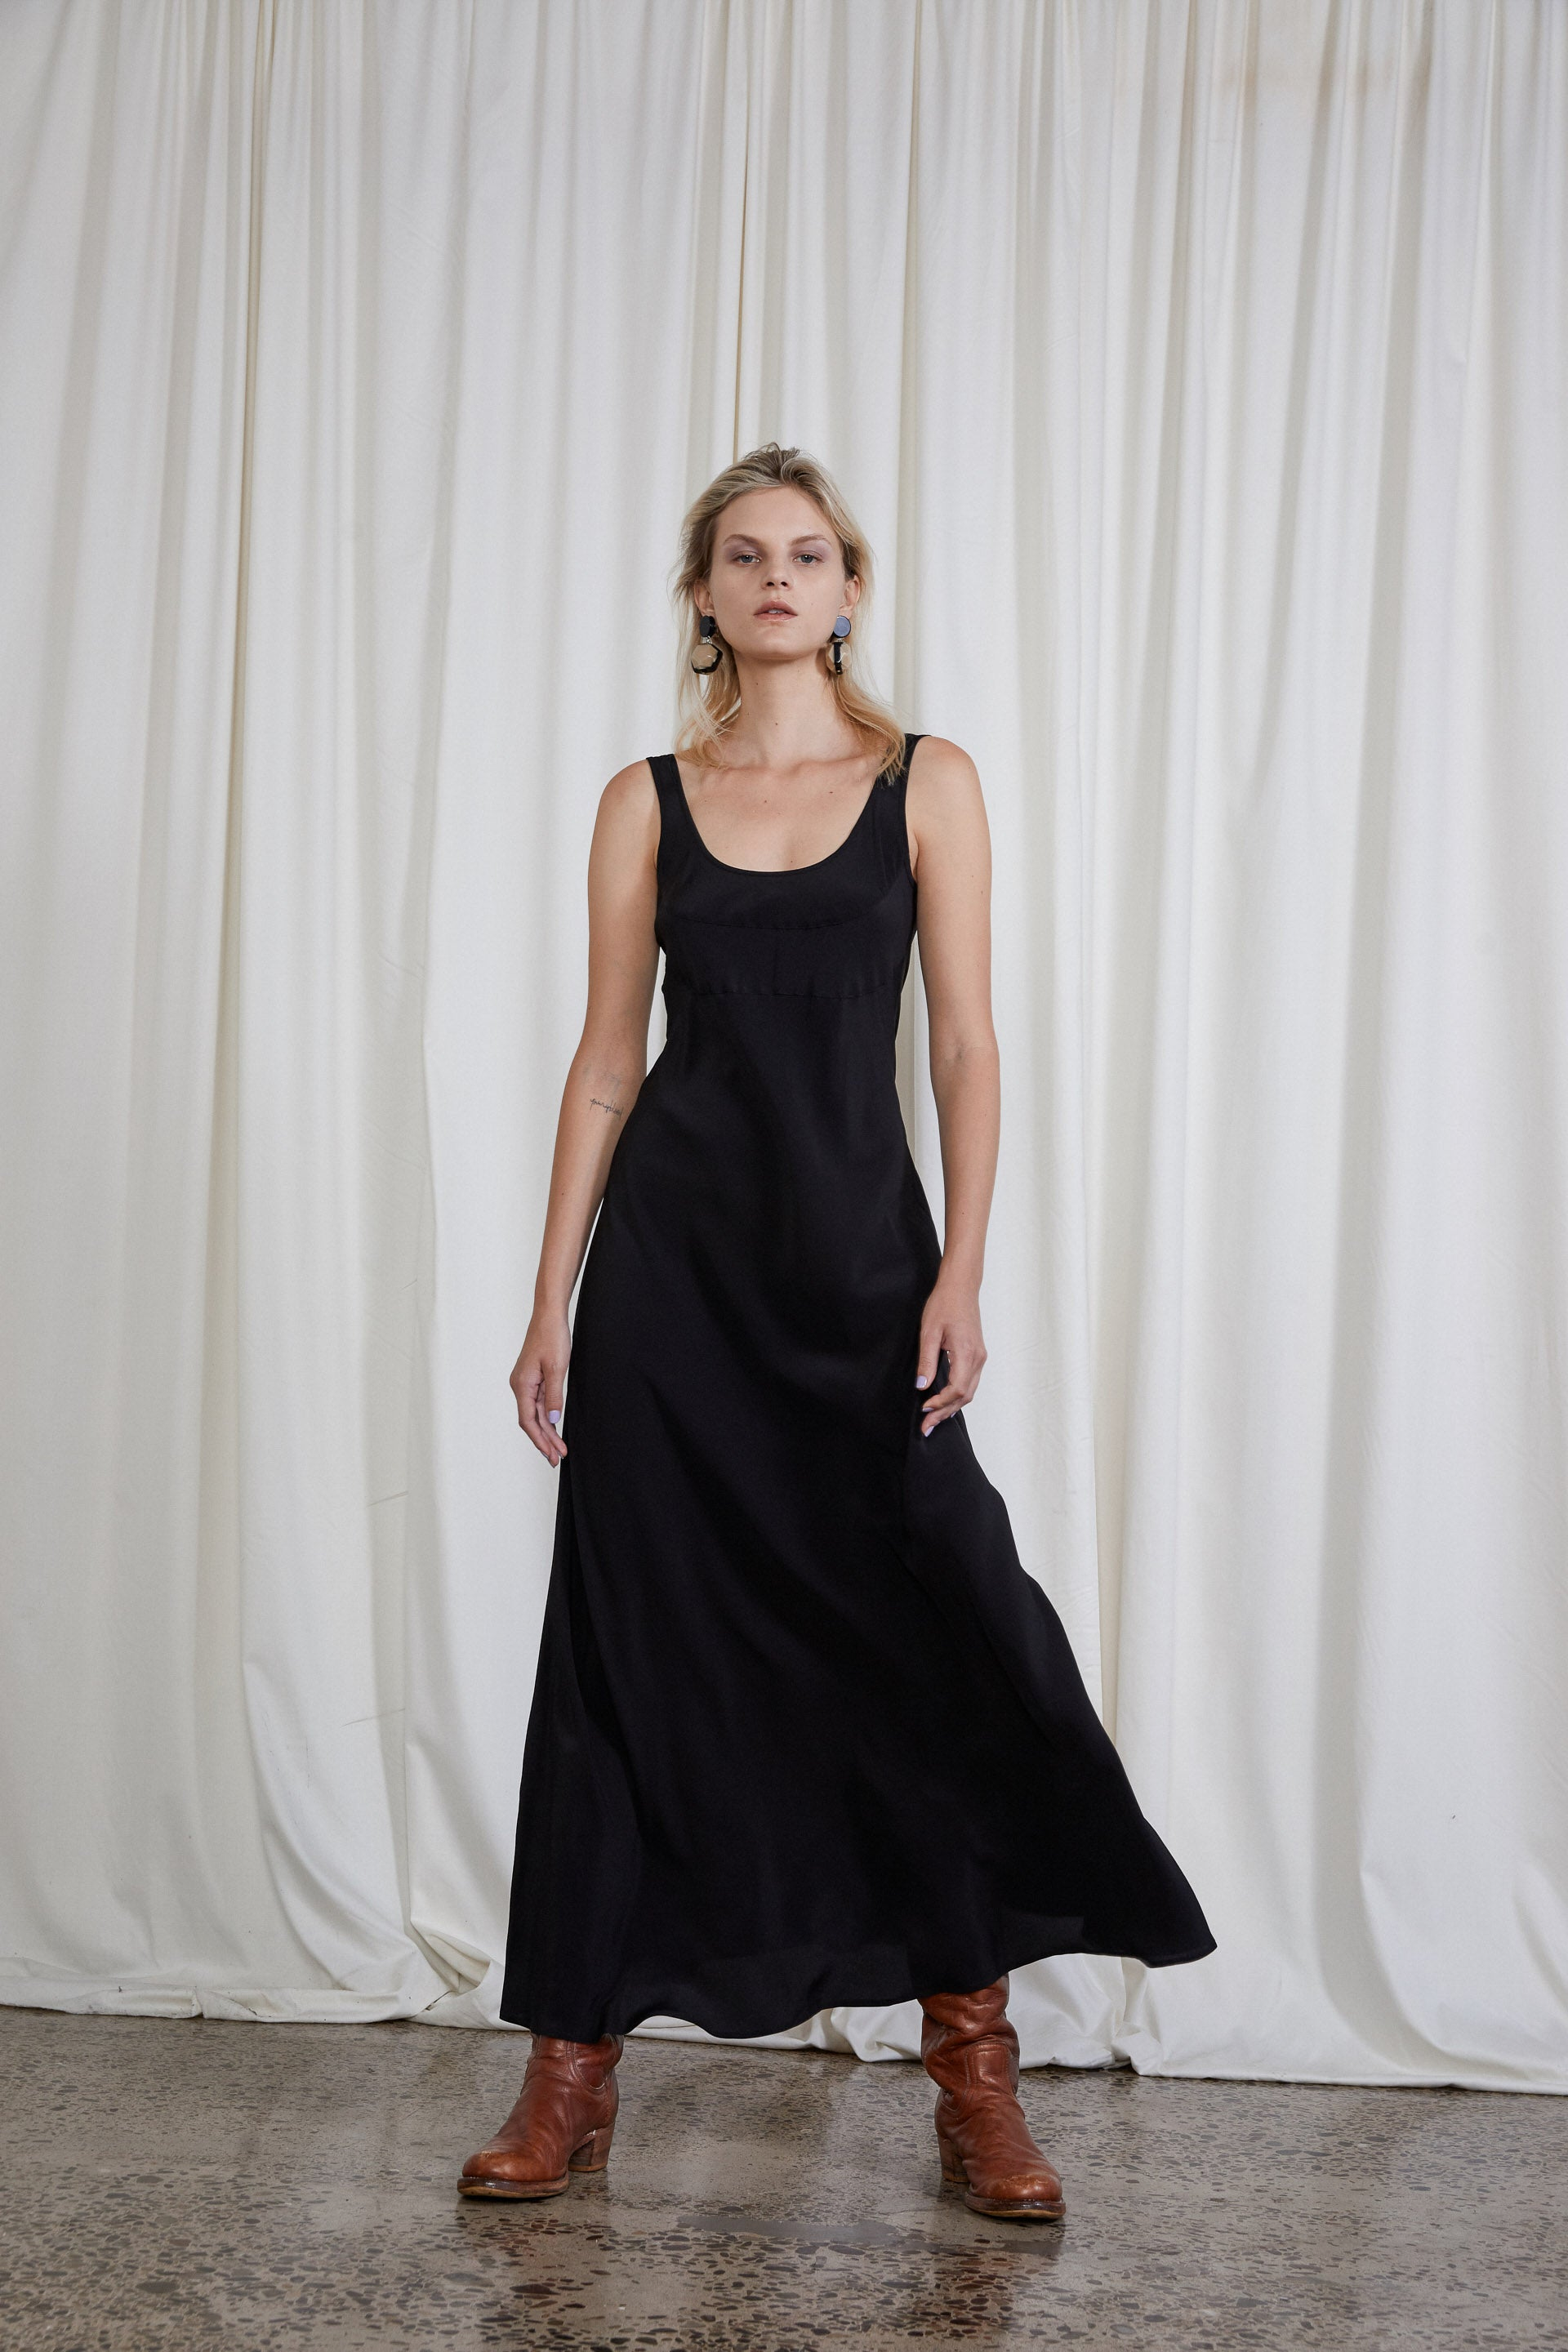 4th Wave Dress - Onyx Silk Crepe